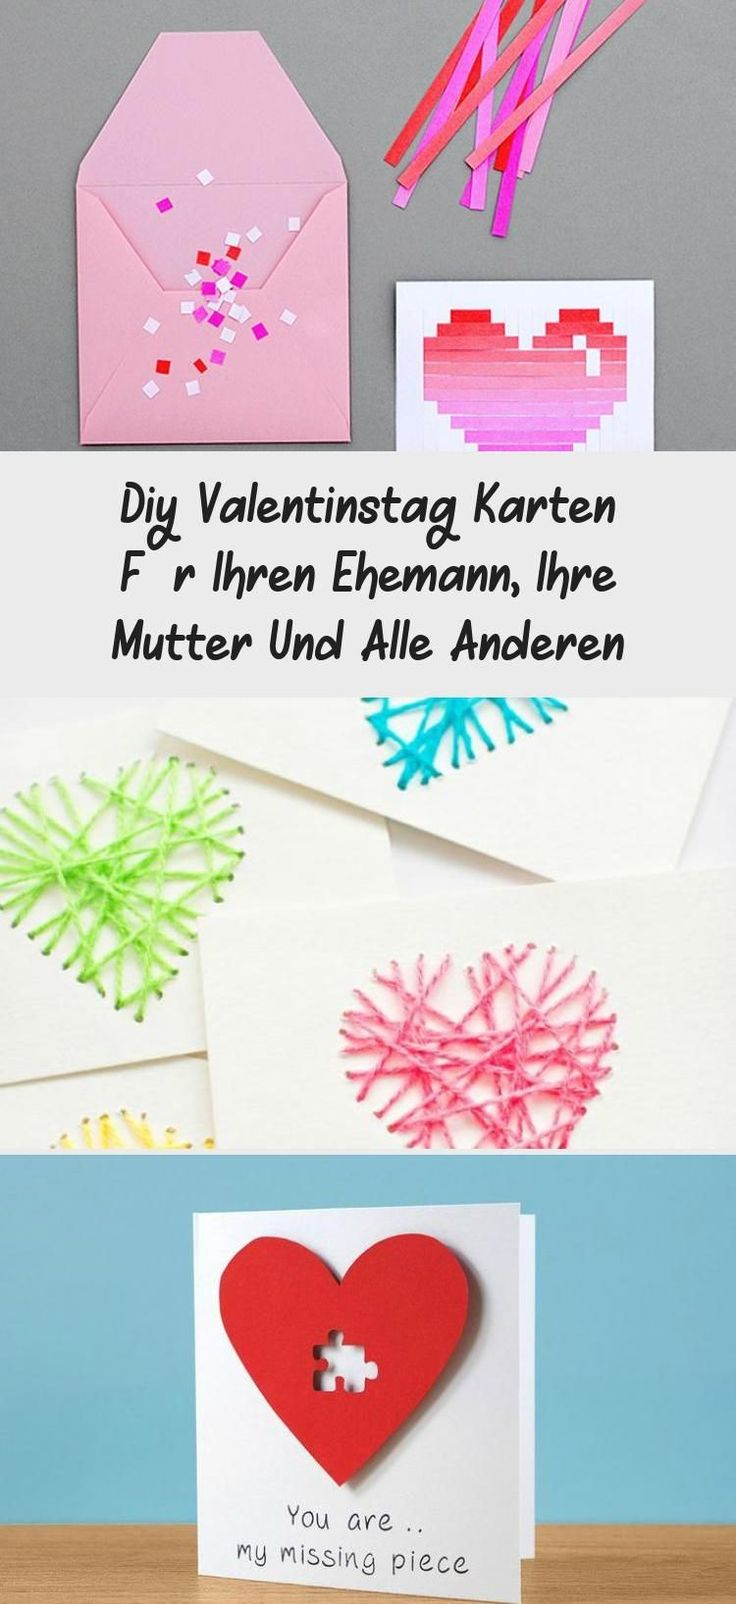 diy valentine's day cards for your husband mother and